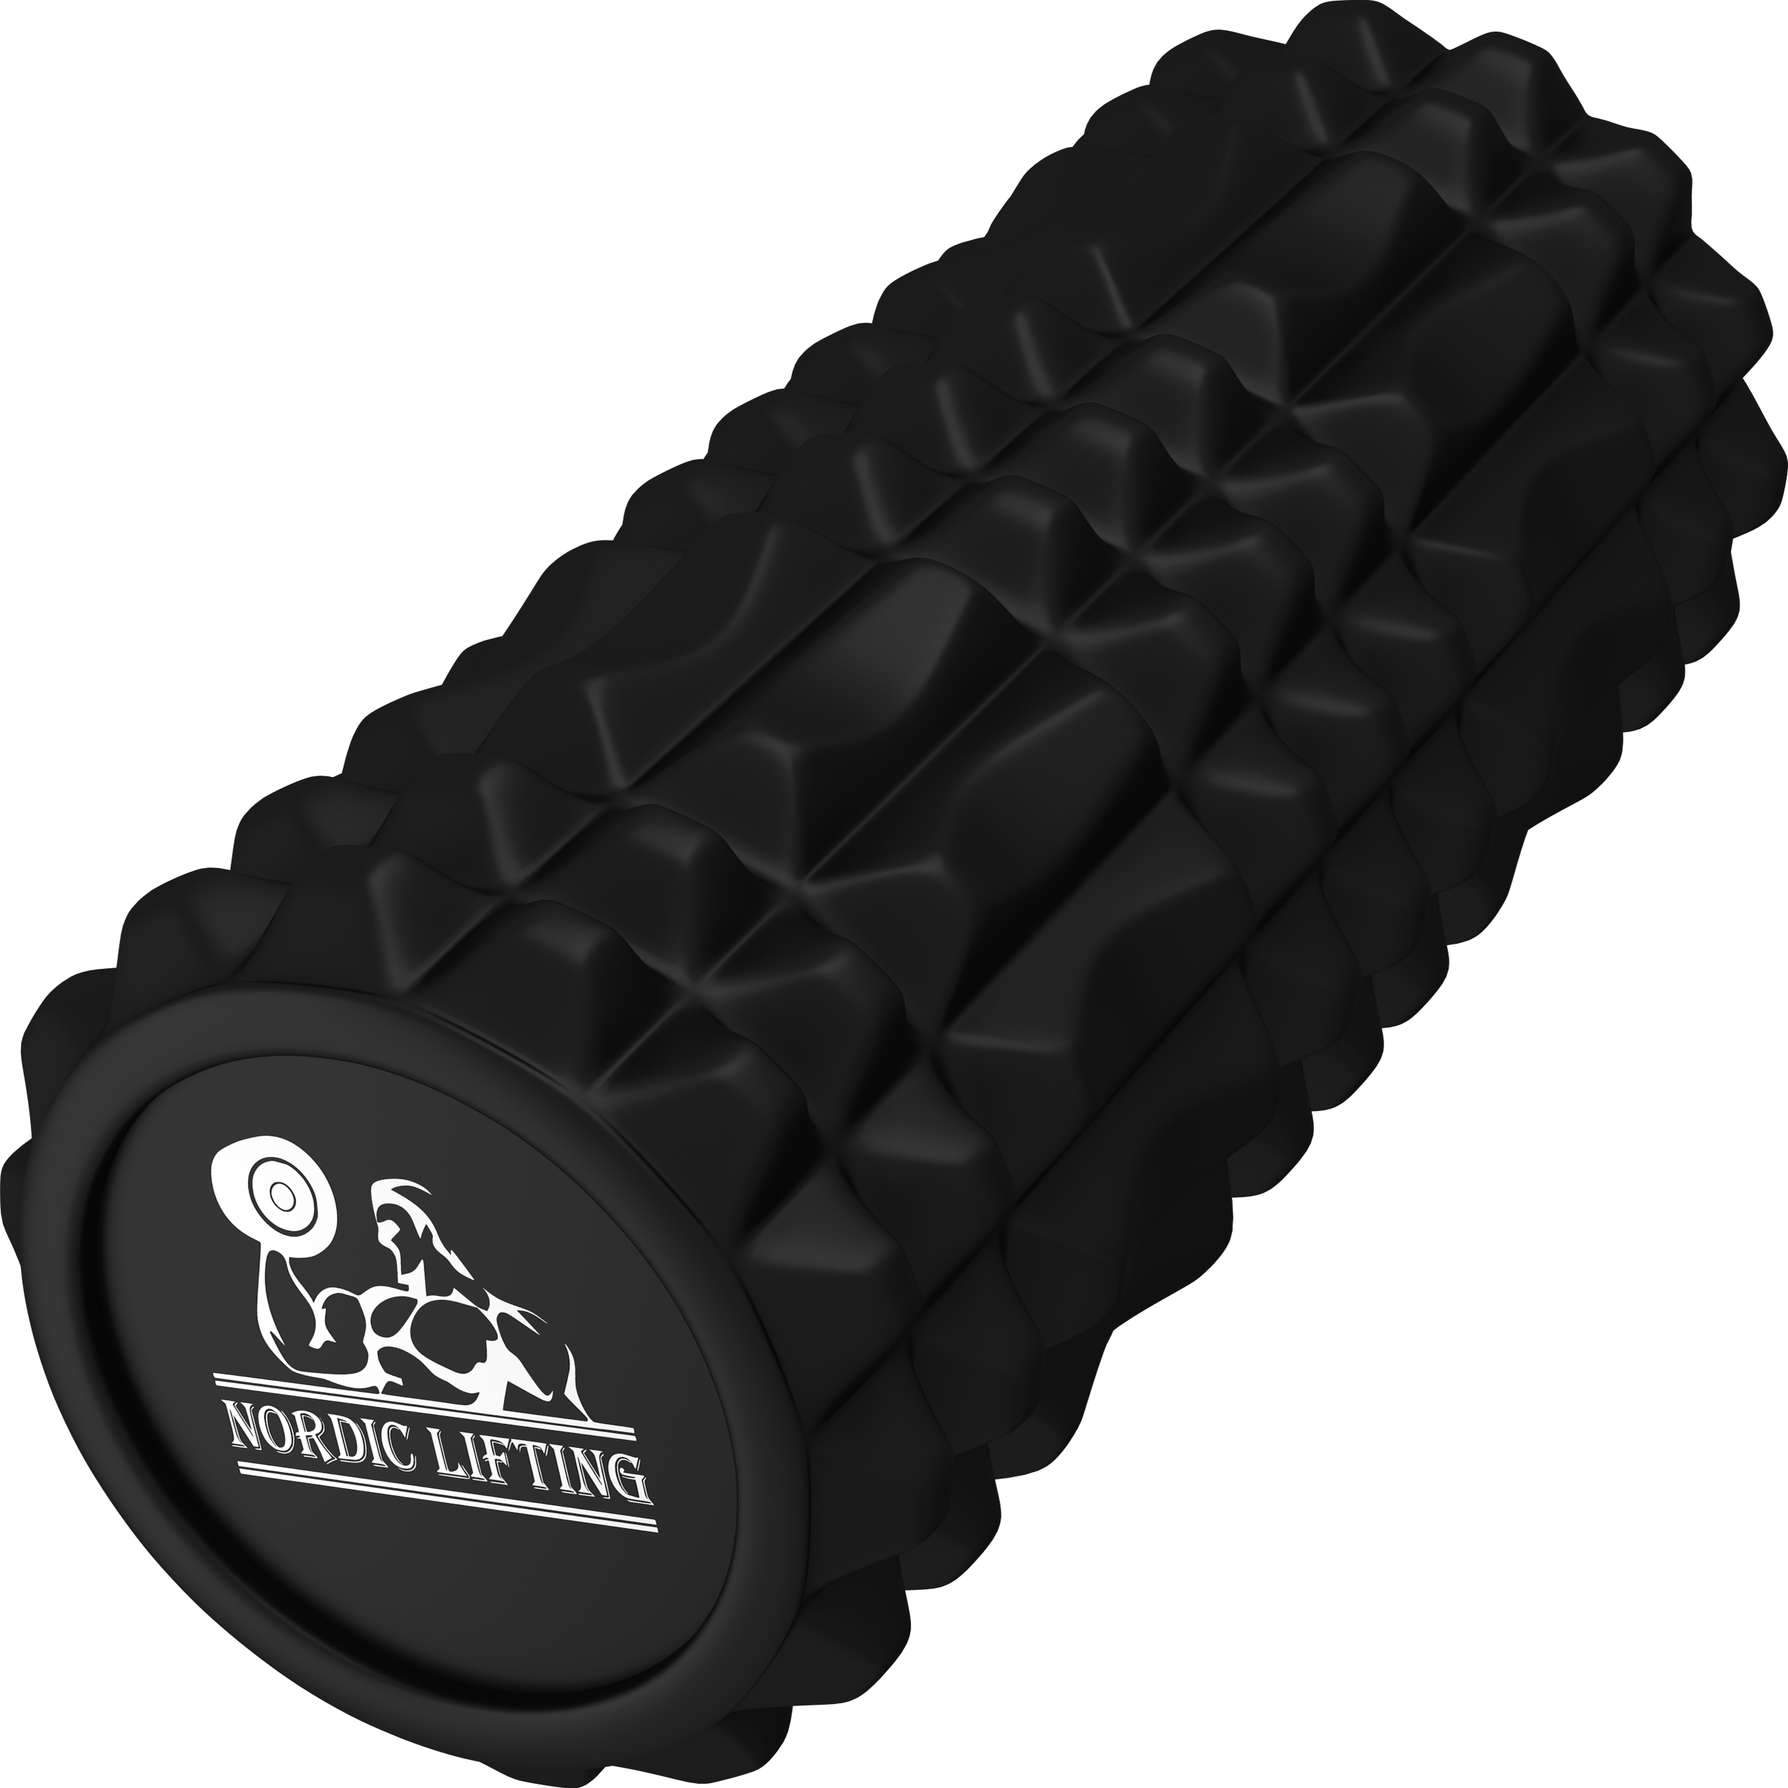 Amazon Deal of the Day, Nordic Lifting Gym Gears, Up to 60% Off, Amazon, Prime Shipping $7.17